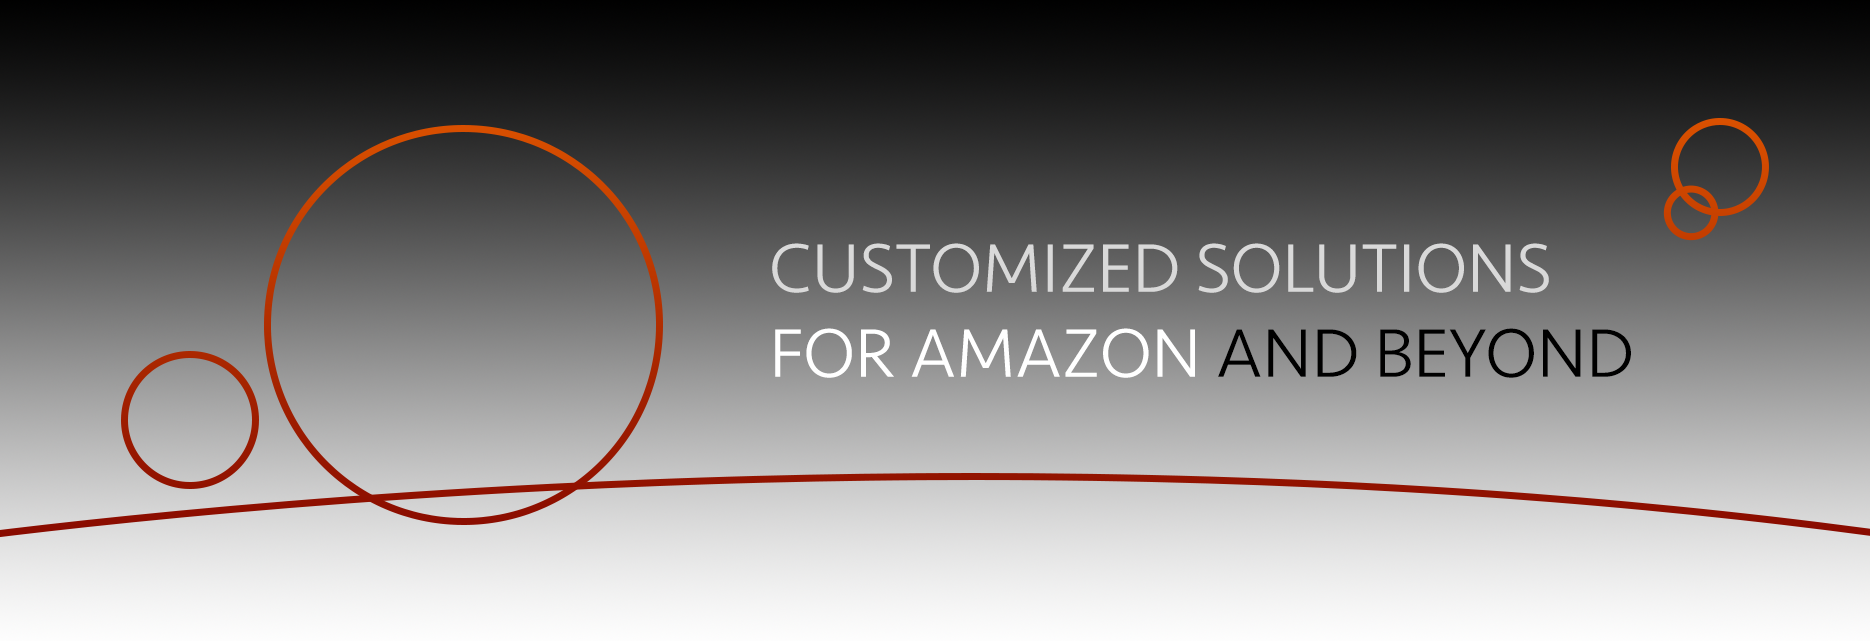 Customized solutions for Amazon and beyond